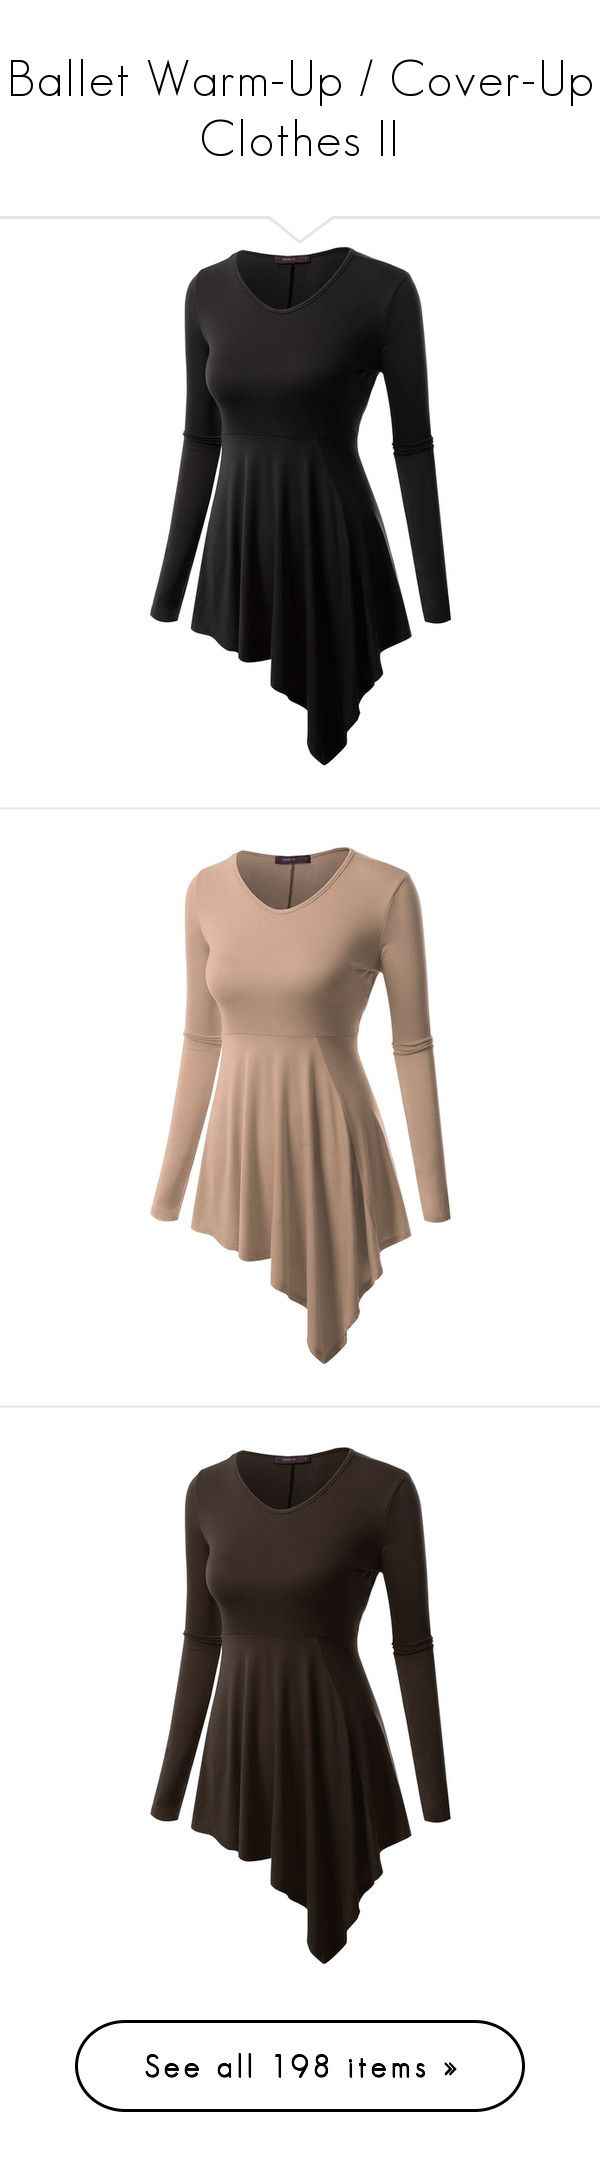 """Ballet Warm-Up / Cover-Up Clothes II"" by gymholic ❤ liked on Polyvore featuring dresses, tops, tunics, shirts, tank tops, tanks, blusas, sleeveless tops, black tank and strappy tank top"